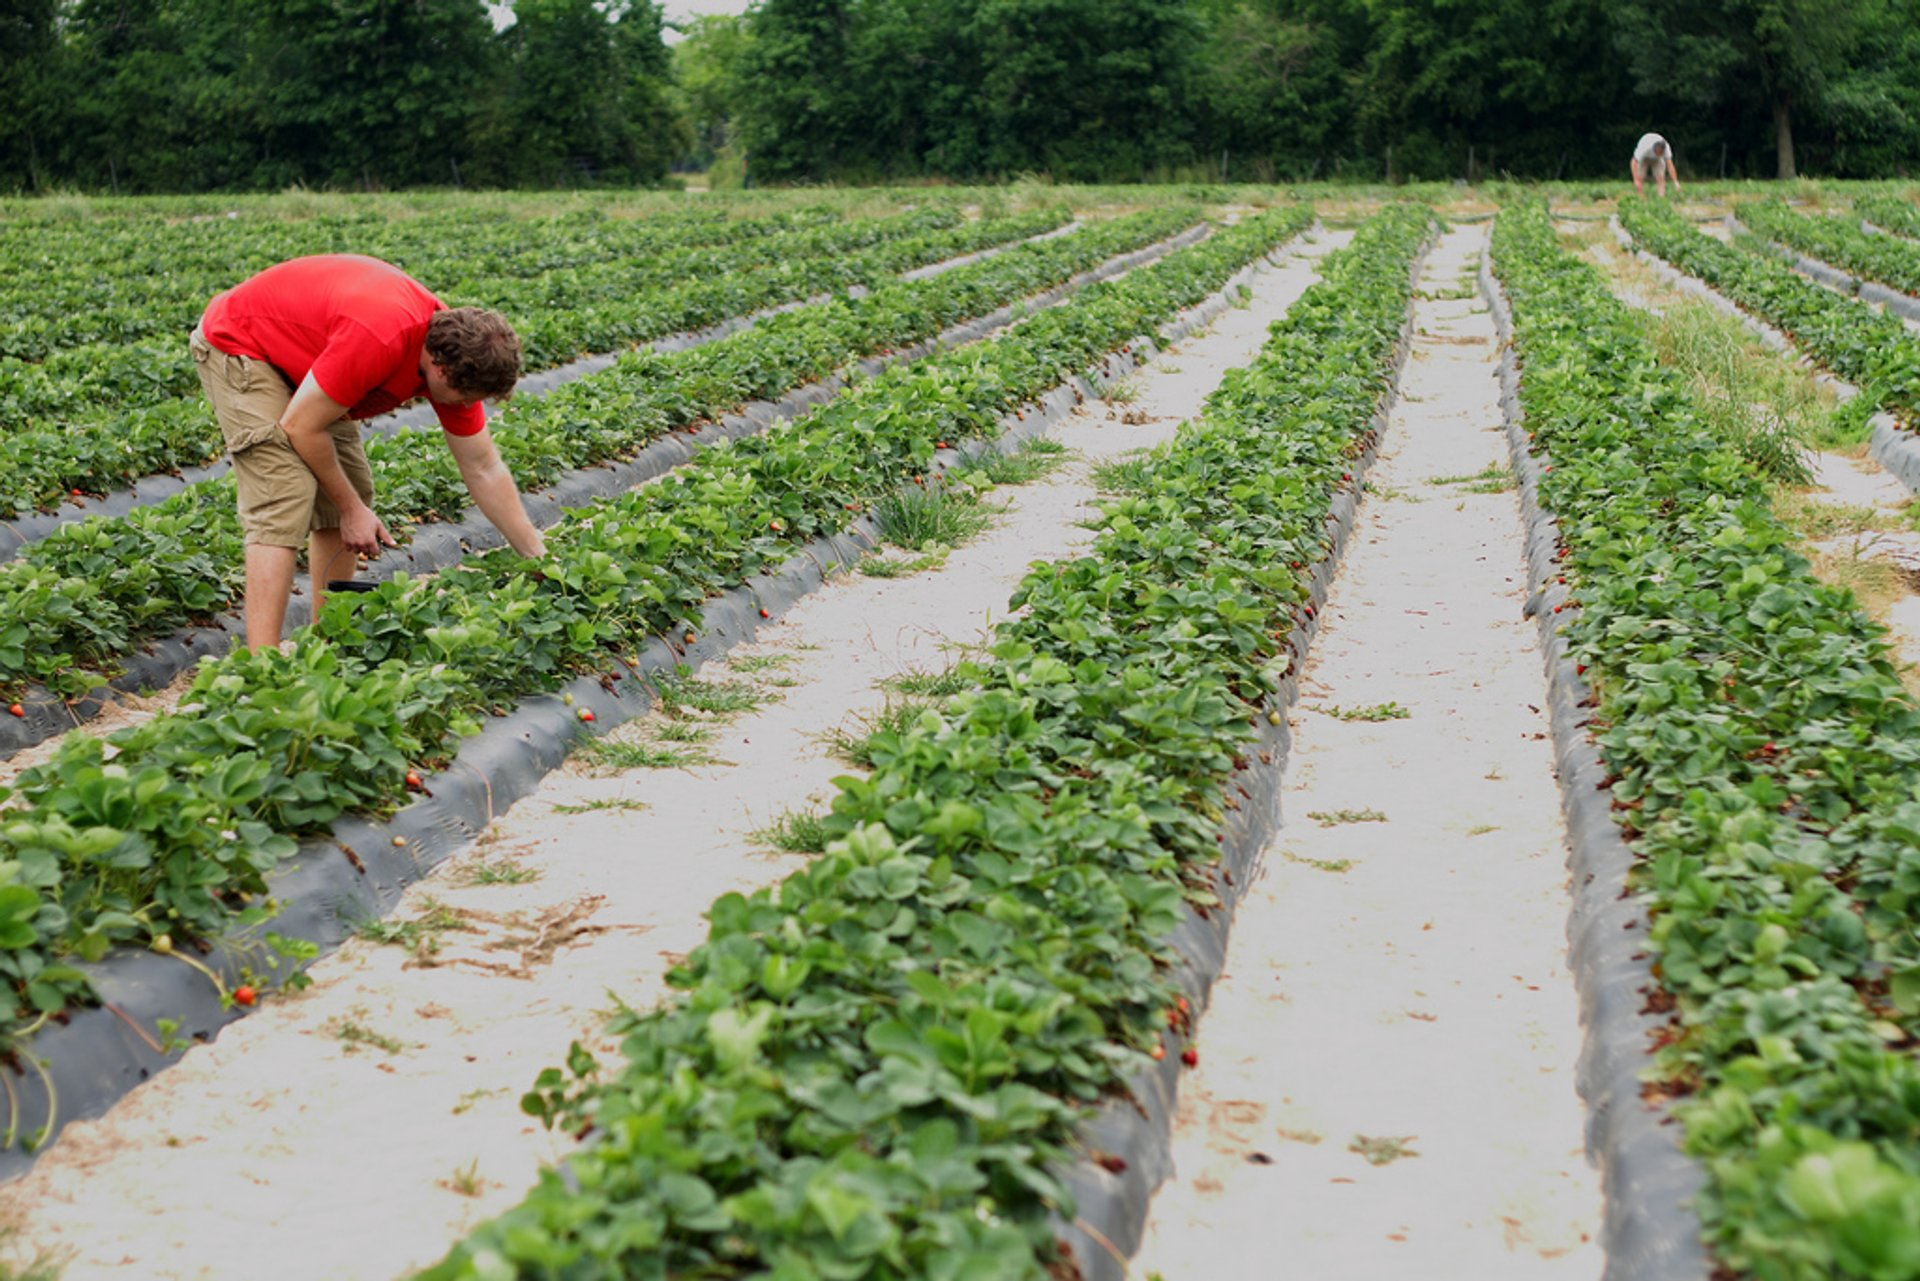 Strawberry fields, Alvin, Texas 2019